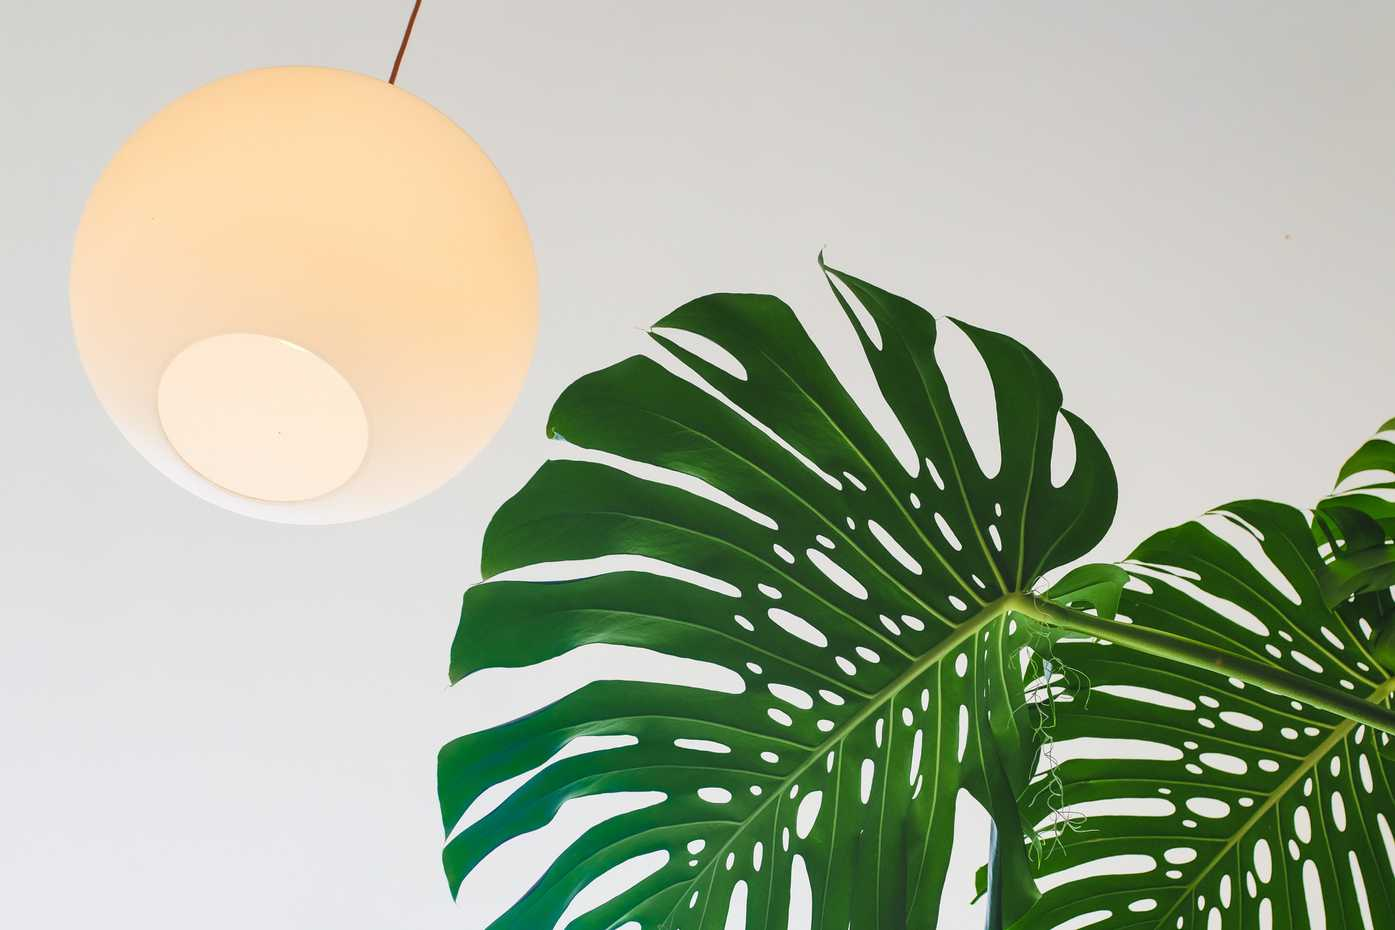 A ceiling light and a large plant leaf